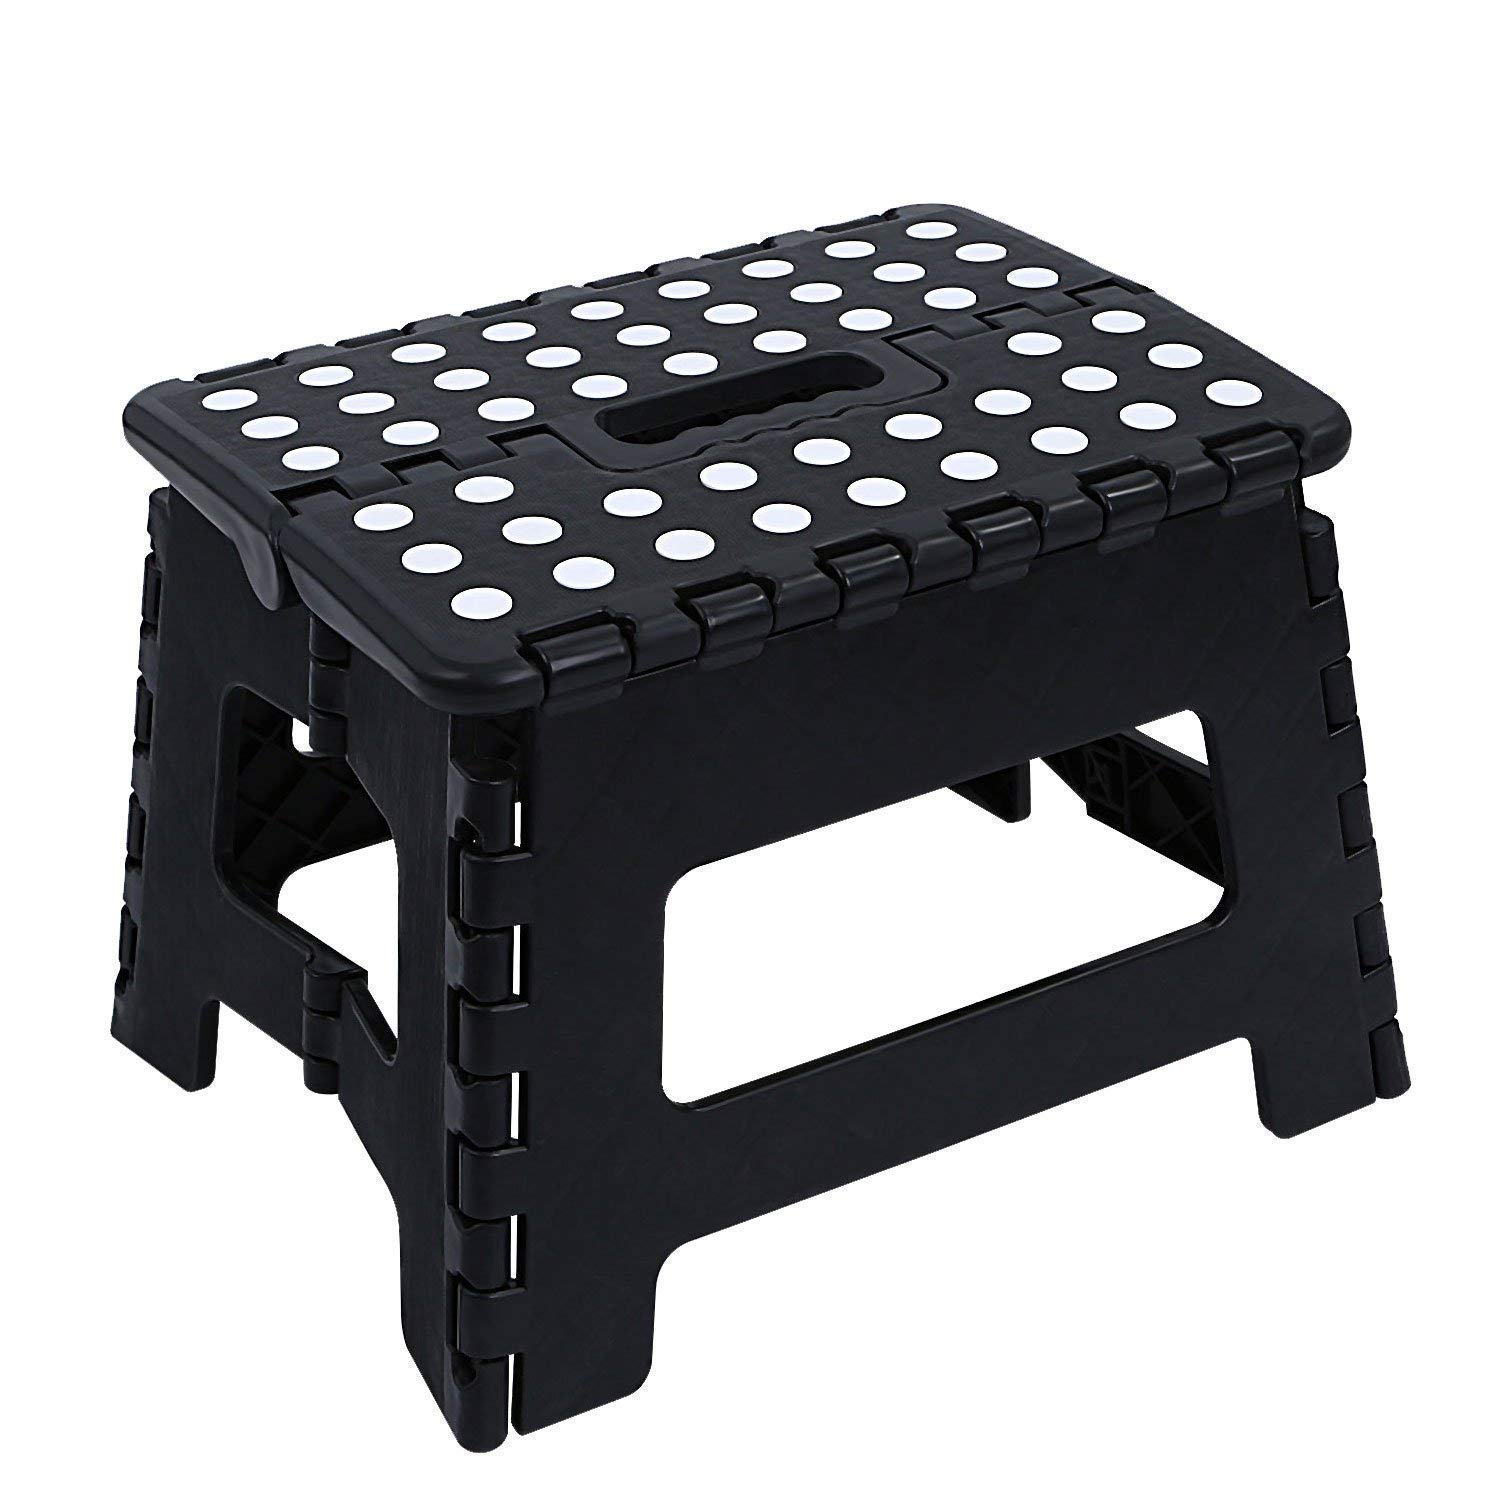 Maddott Super Strong Folding Step Stool,11x8.5x8.5inch, 2pc, Holds up to 250 Lb, Black